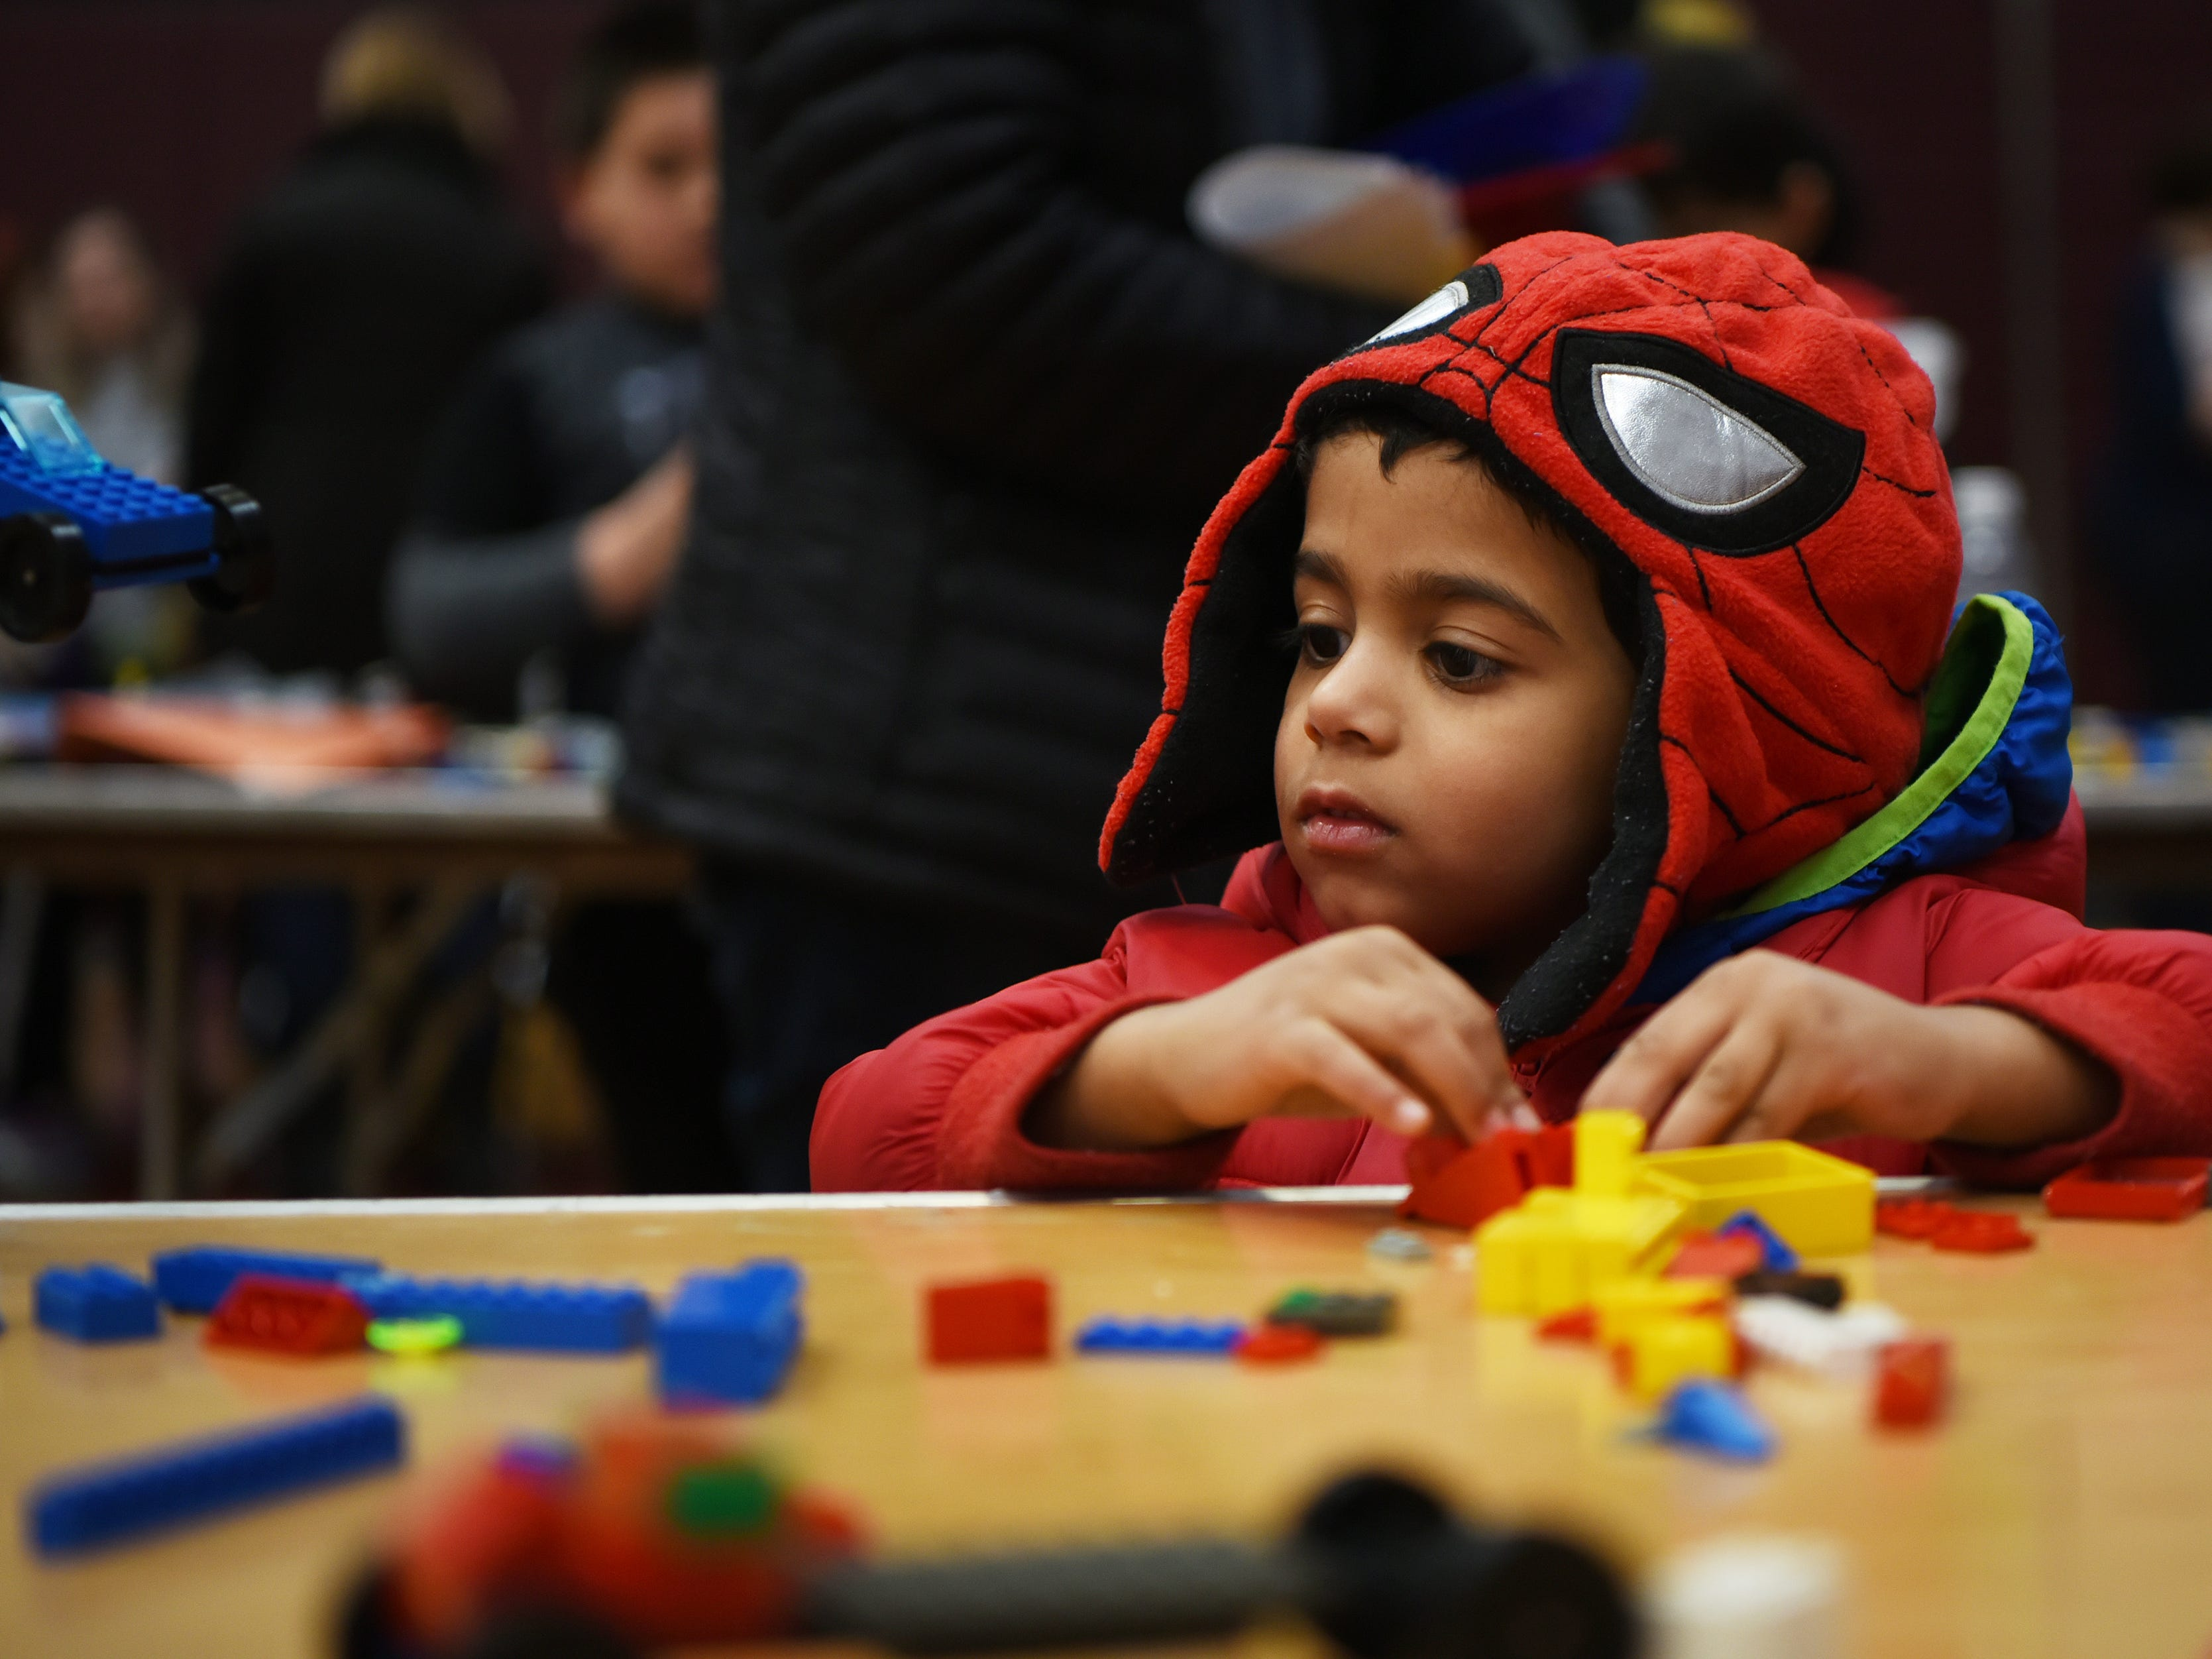 Nik Jamguli, 3, makes a LEGO creation. This is one of many activities during Super Science Saturday held at Ridgewood High School in Ridgewood on Saturday March 2, 2019.